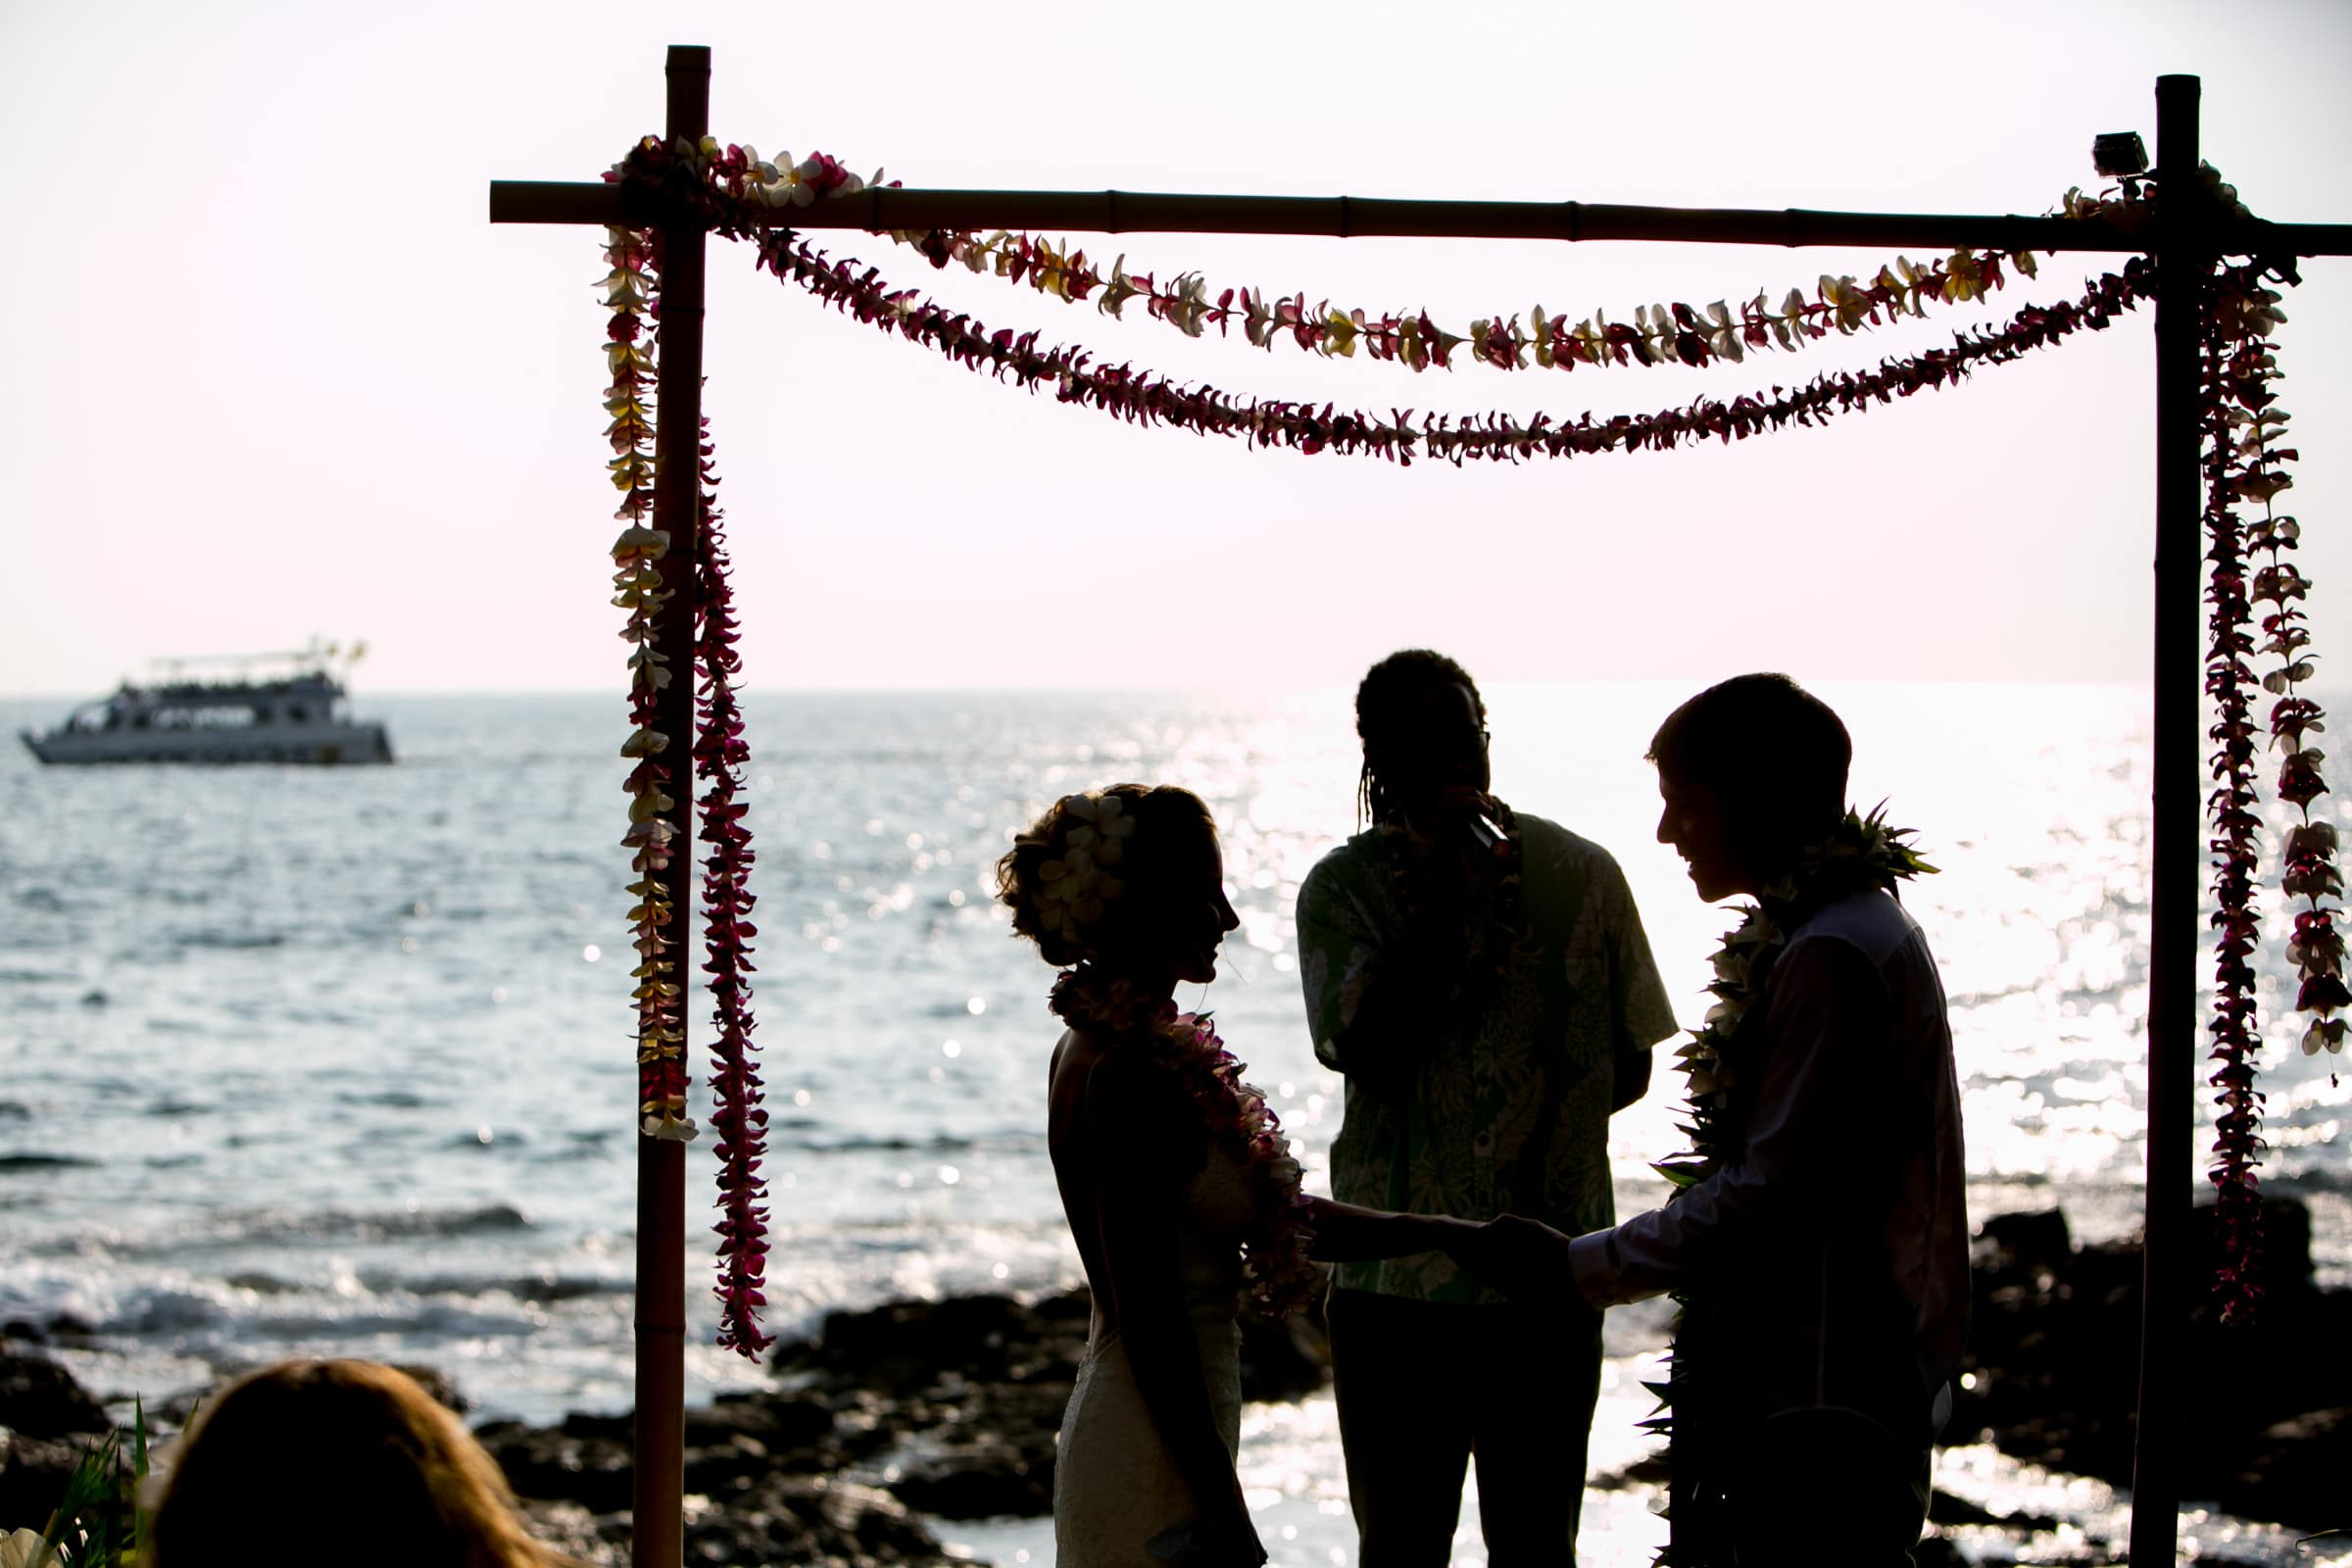 Bride and groom exchanging vows in a silhouette during a Kailua Kona Wedding ceremony at the Kona Beach Bungalows on the Big Island of Hawaii